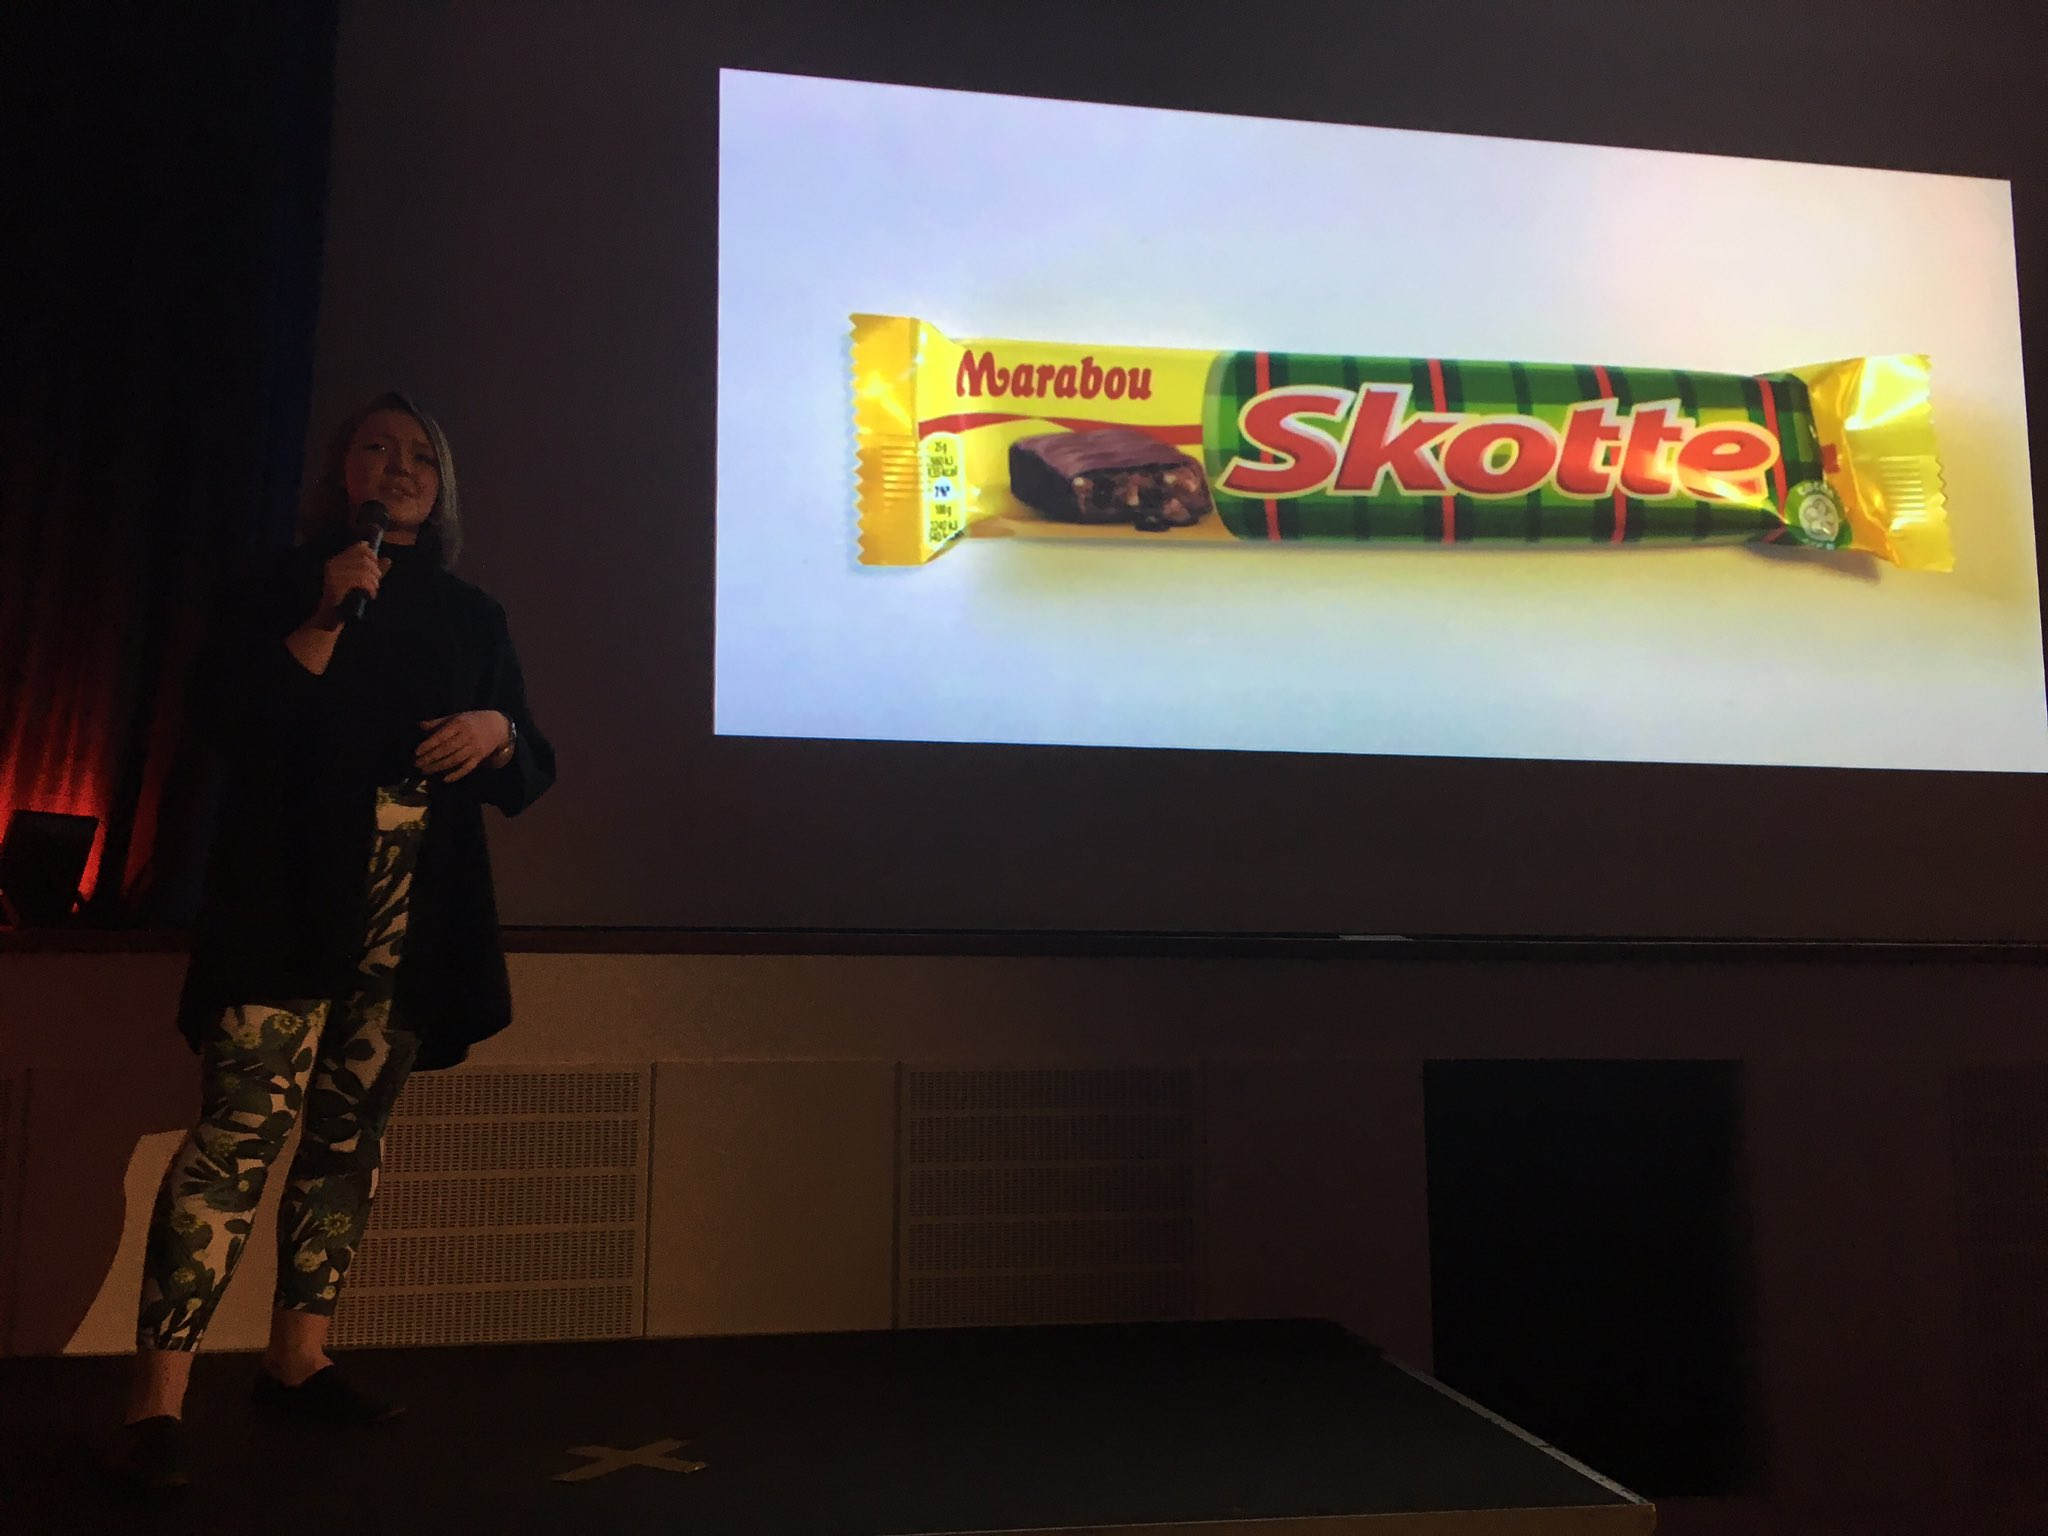 Caitlin Goodale – User Experience Designer from King @caiitlinz talking moving to a new place and games being the common language! #gamesPK https://t.co/QRKRWiQlPL